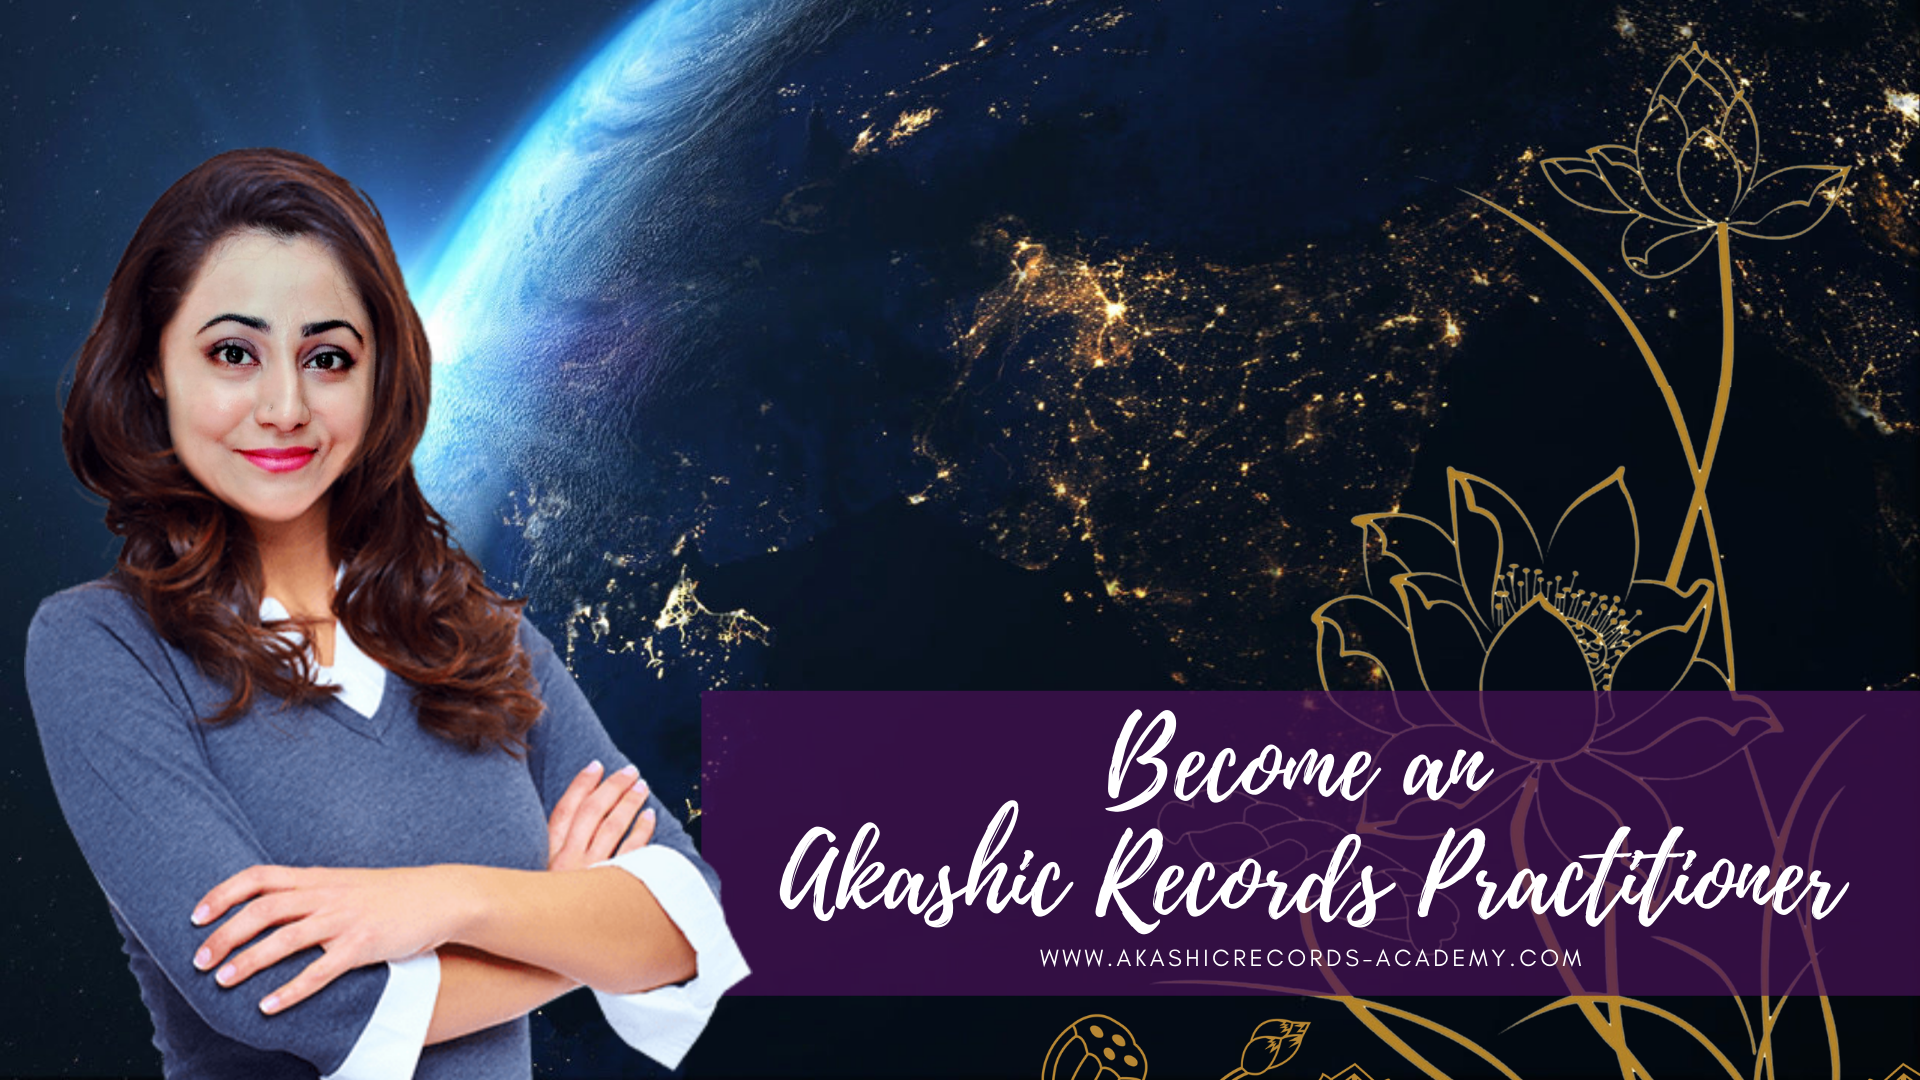 Become an Akashic Records Practitioner